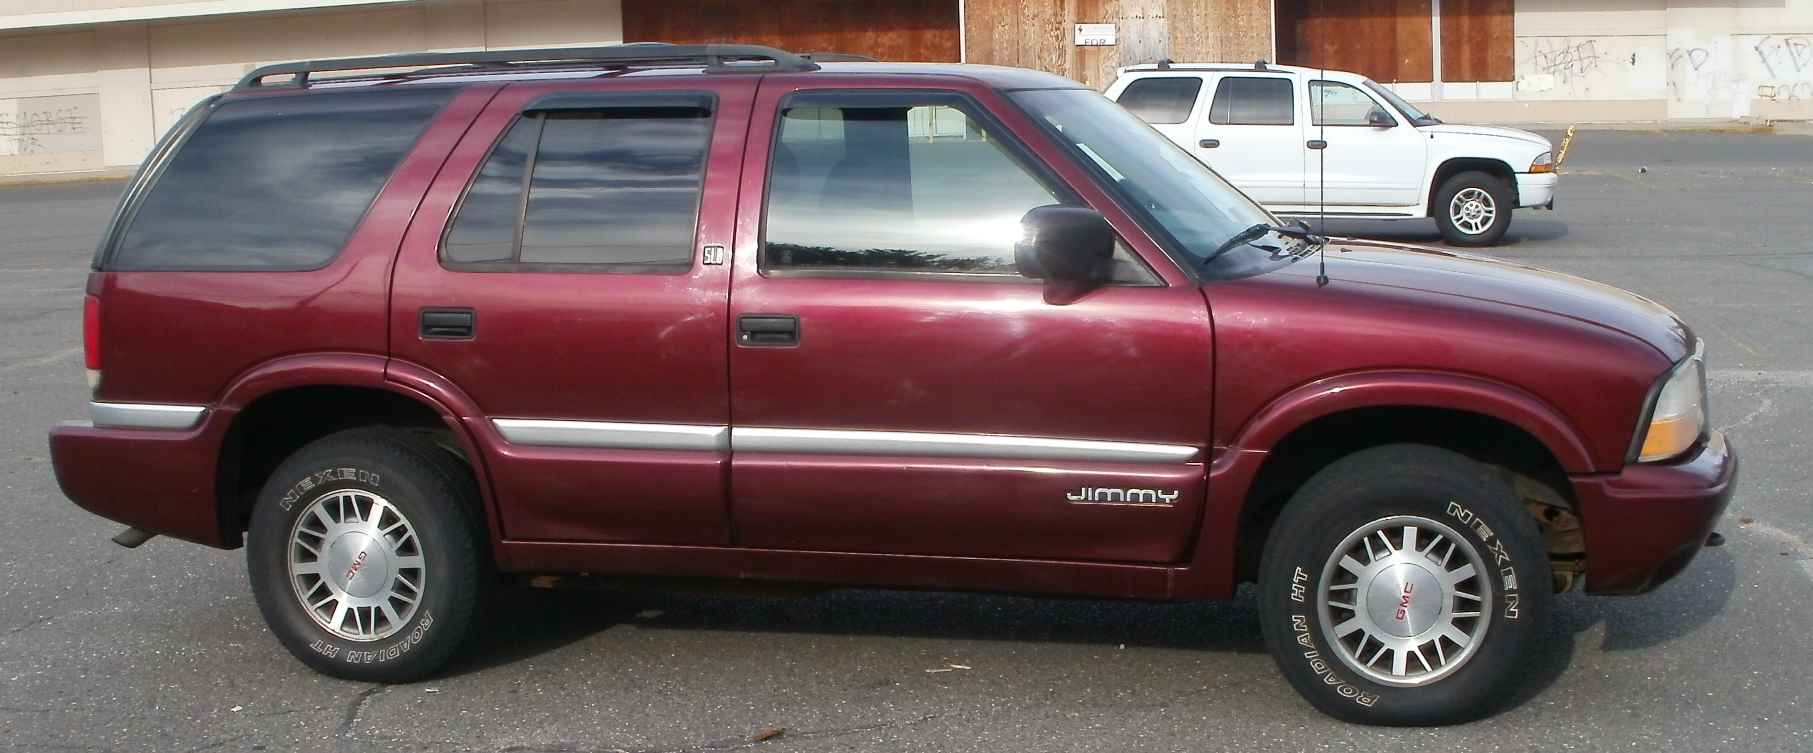 2000 GMC Jimmy #2